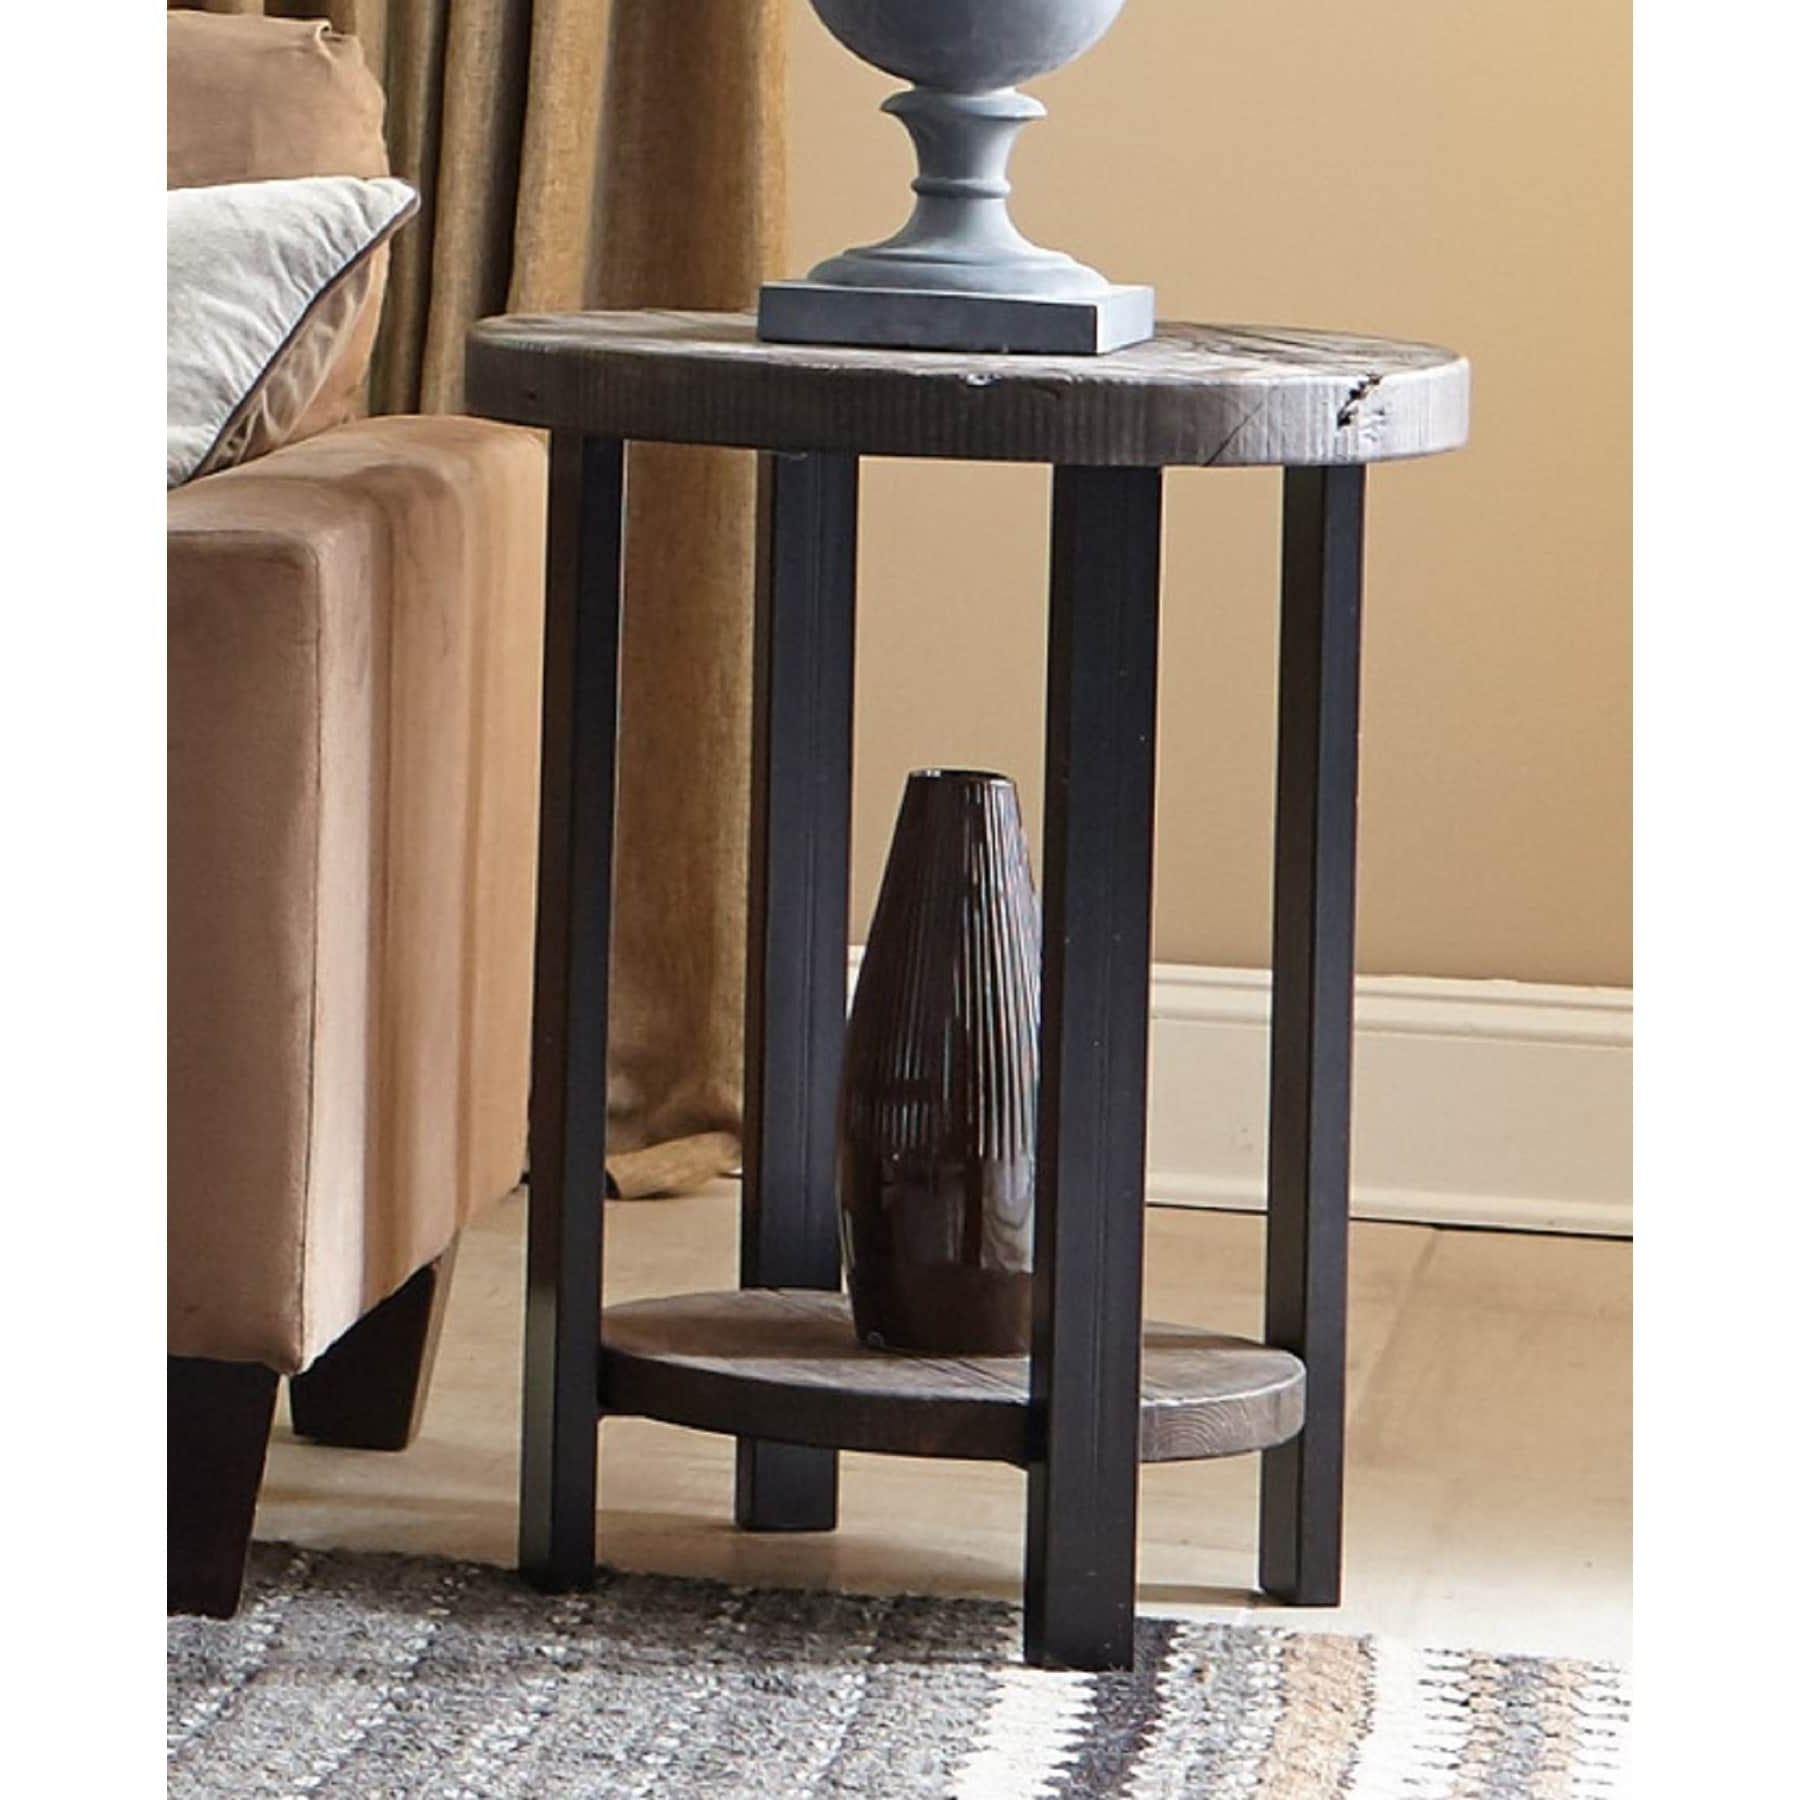 Carbon Loft Lawrence Reclaimed Wood End Table In Natural (As Throughout Well Known Carbon Loft Lawrence Metal And Reclaimed Wood Coffee Tables (View 6 of 20)